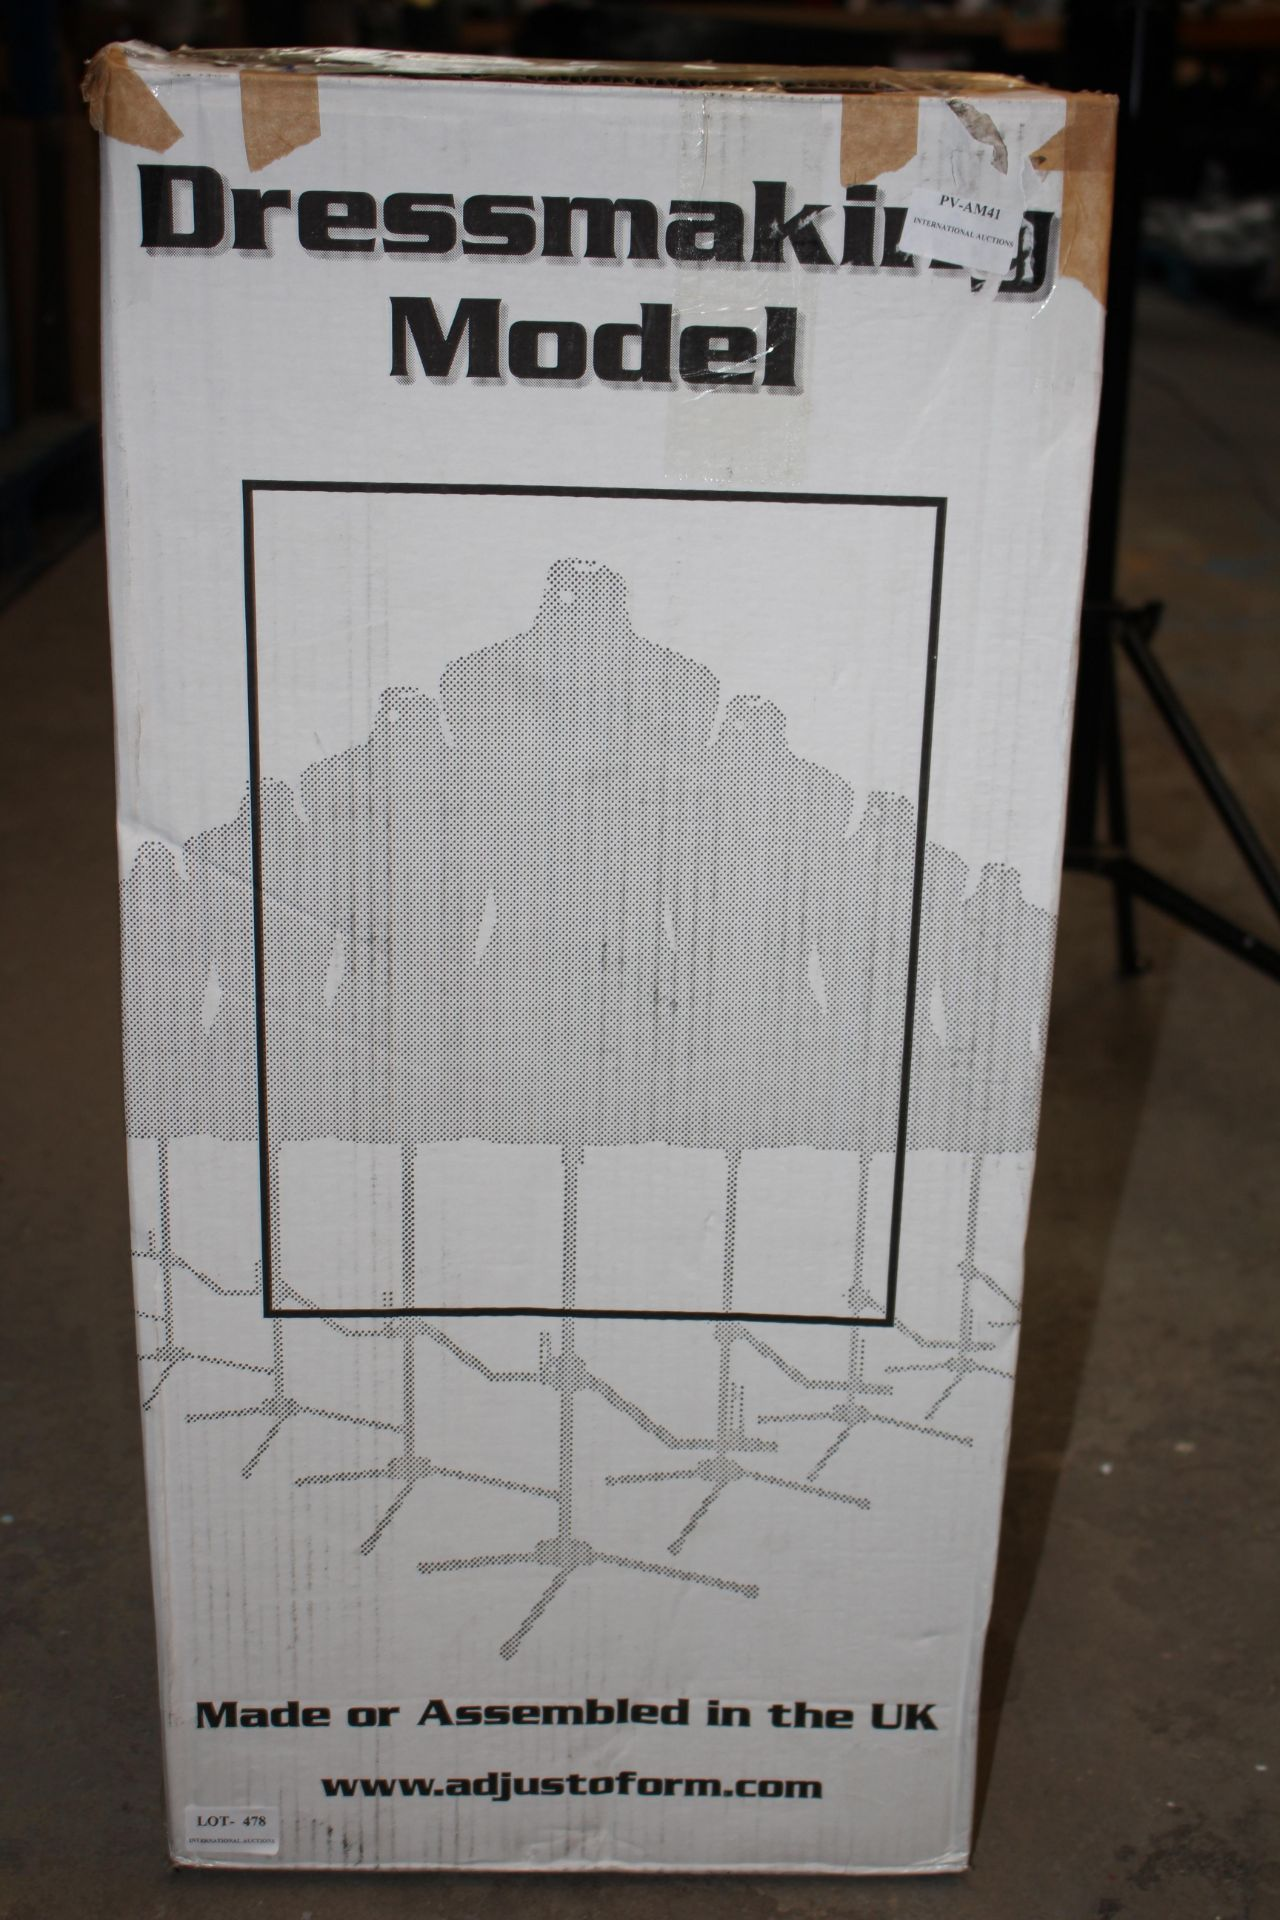 BOXED DRESS MAKING MODEL Condition ReportAppraisal Available on Request- All Items are Unchecked/